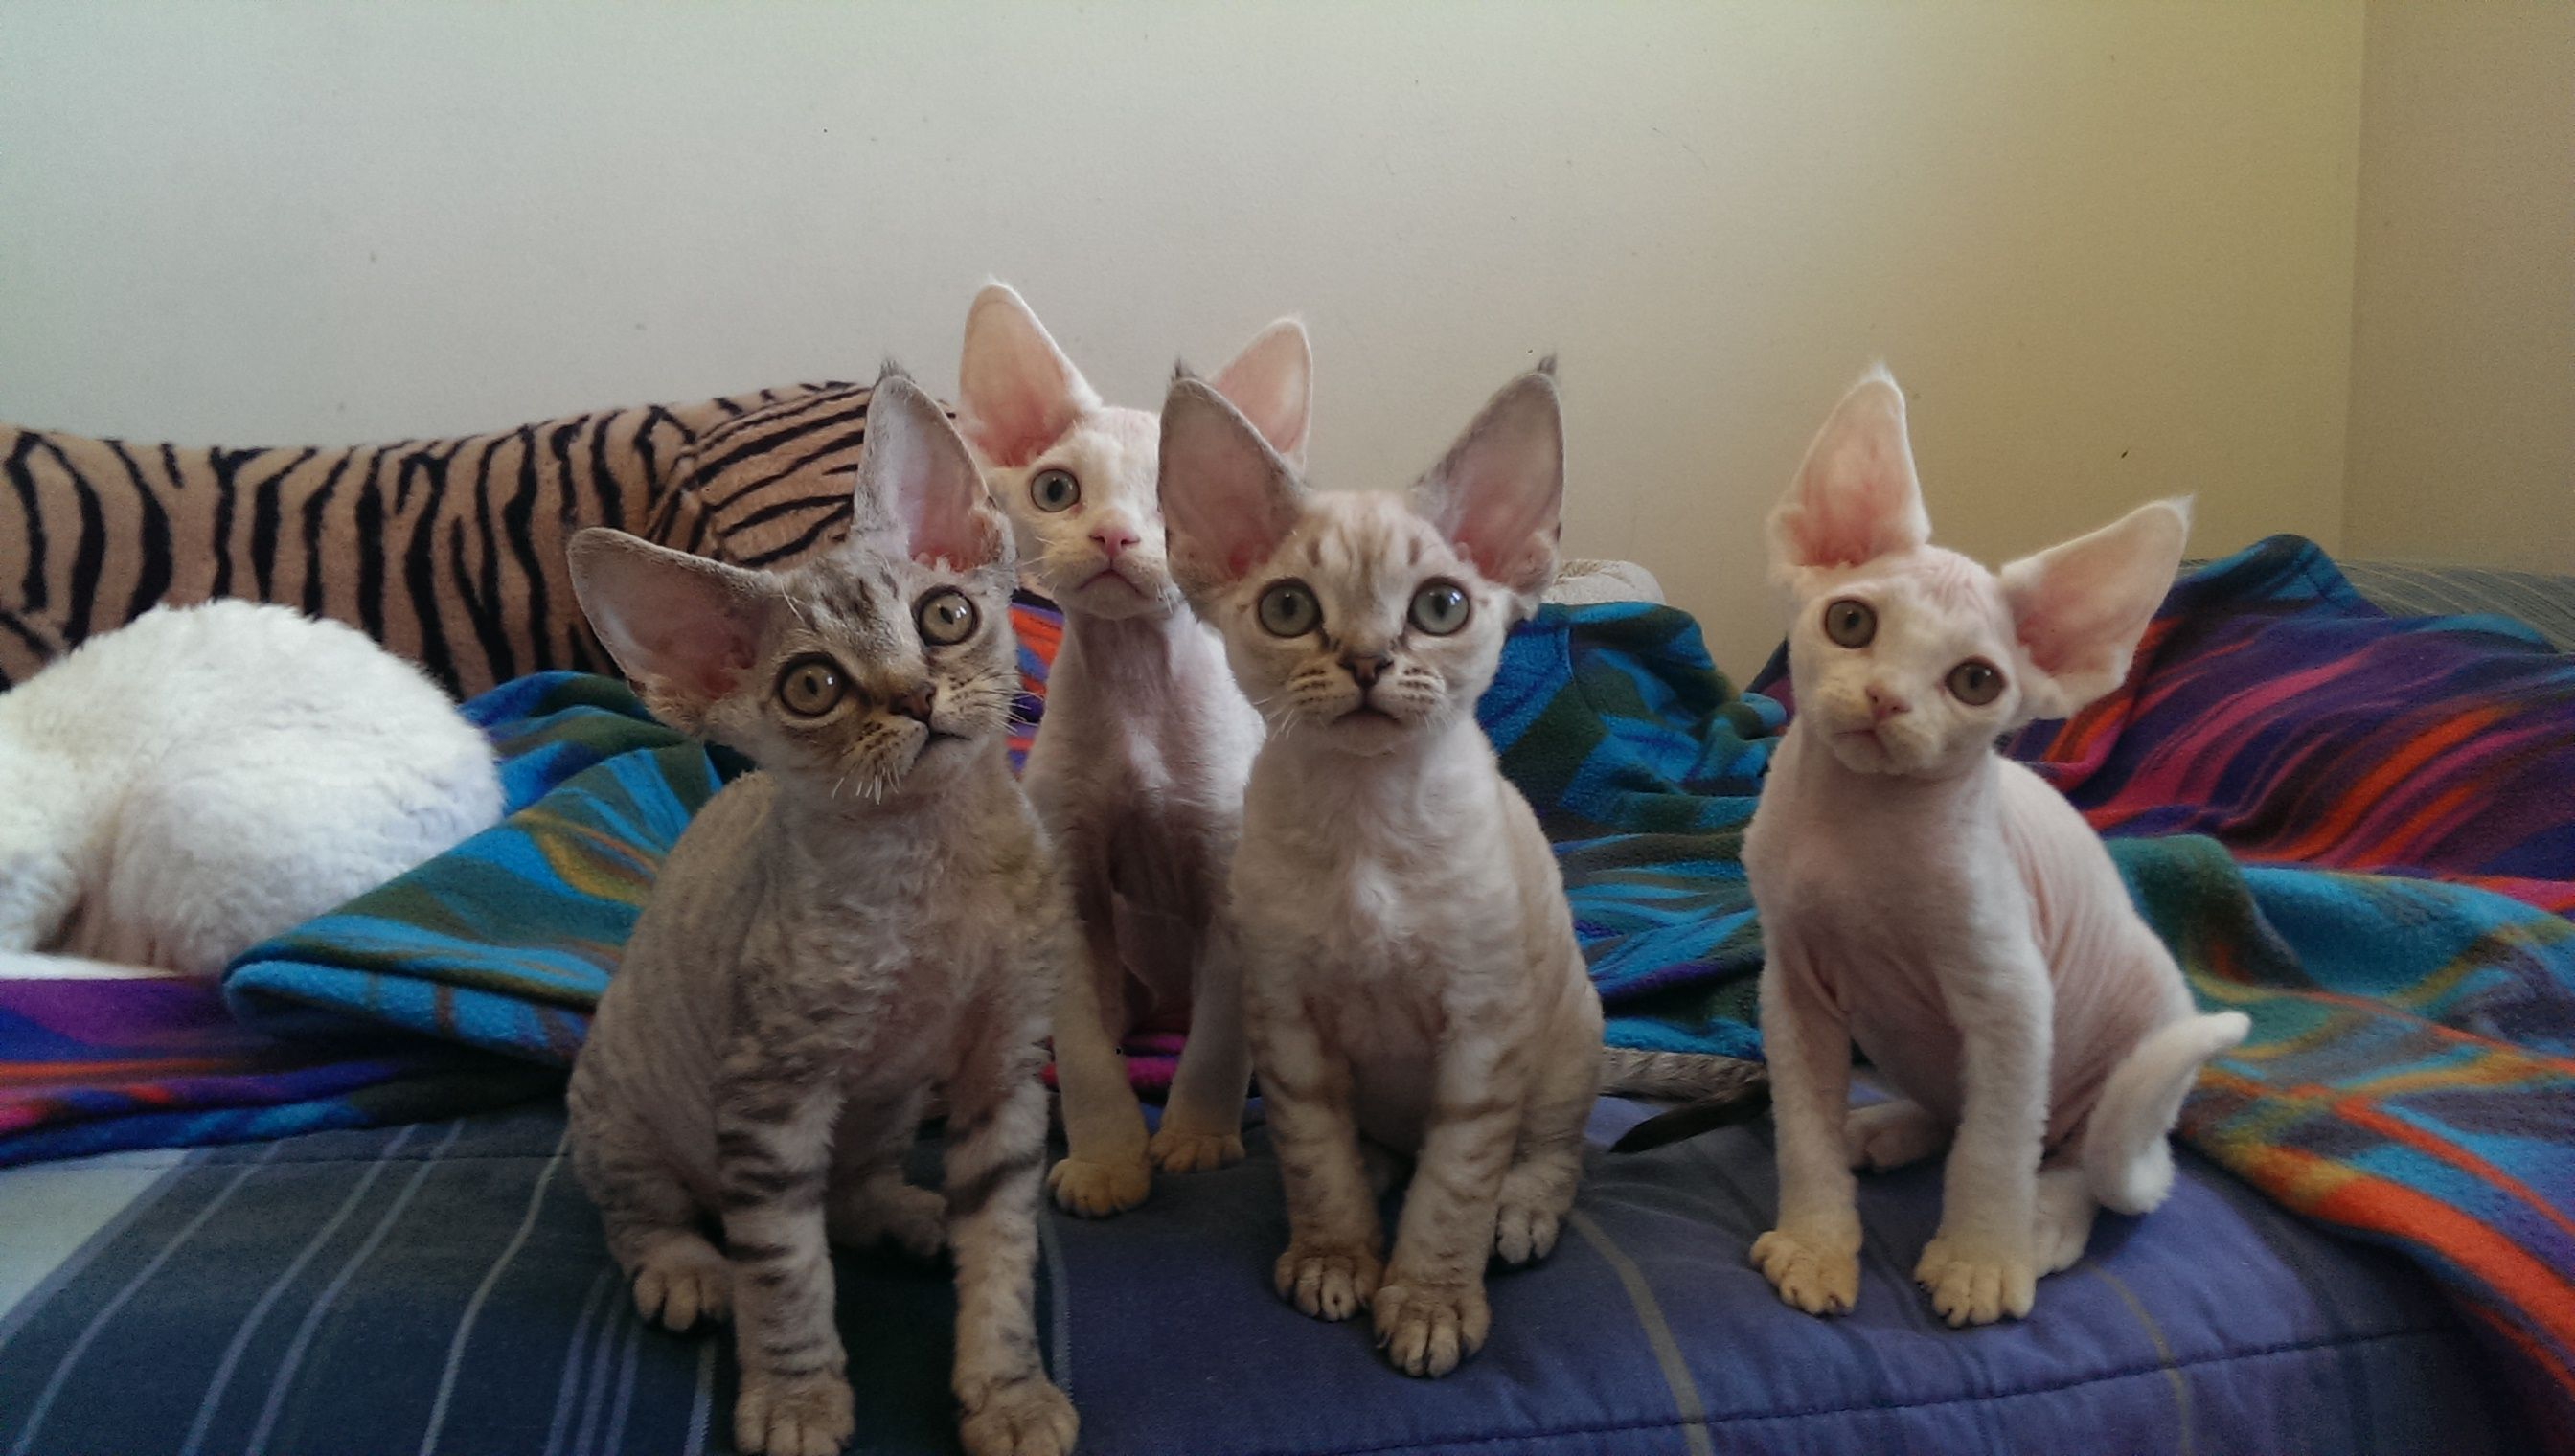 The Devon Rex Cat is a breed of intelligent, shorthaired